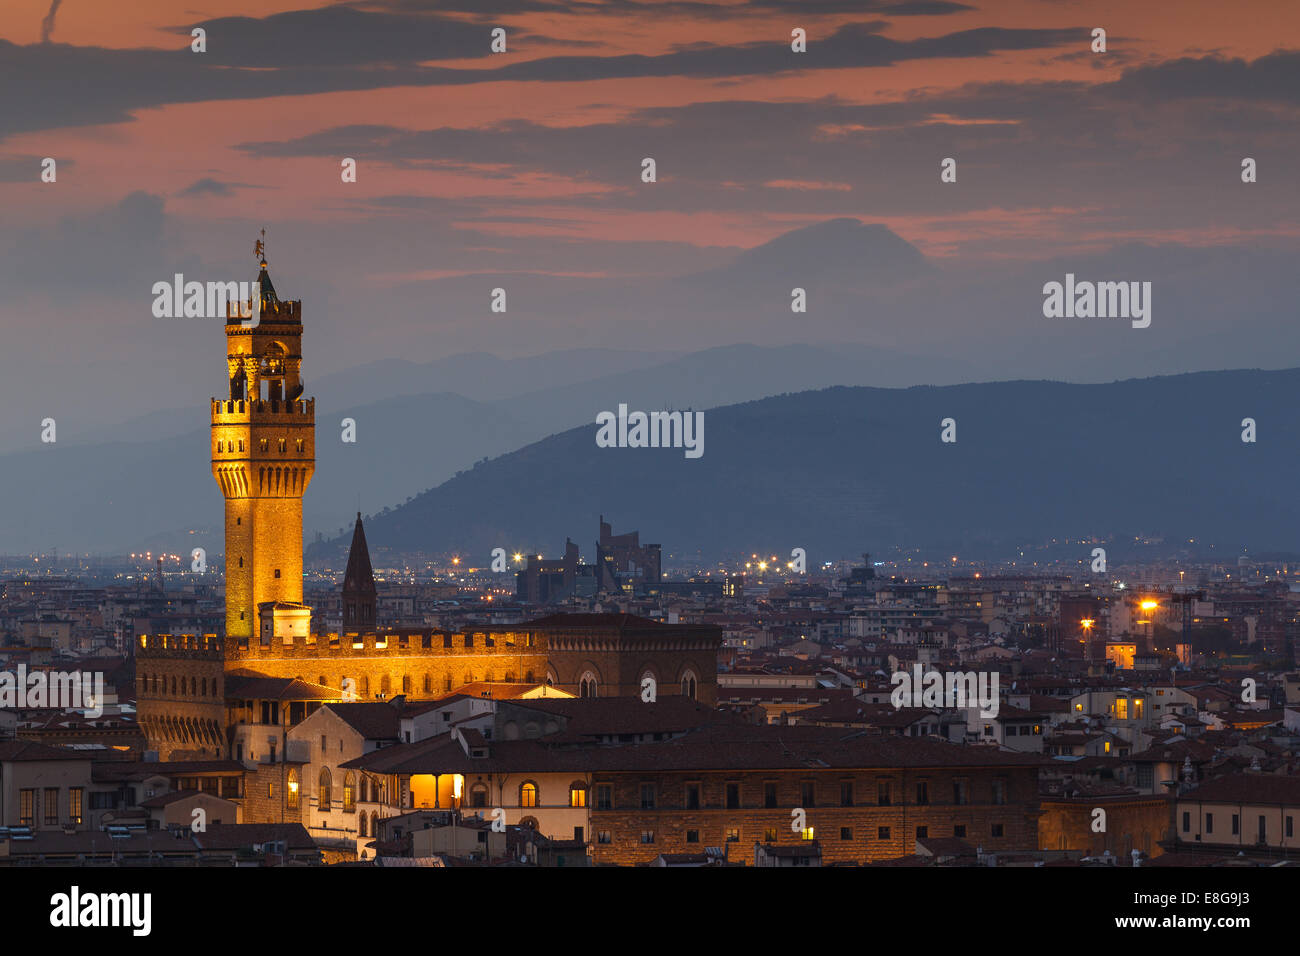 Palazzo Vecchio (Old Palace) at night from Piazzale Michelangelo, Florence, Tuscany, Italy. - Stock Image